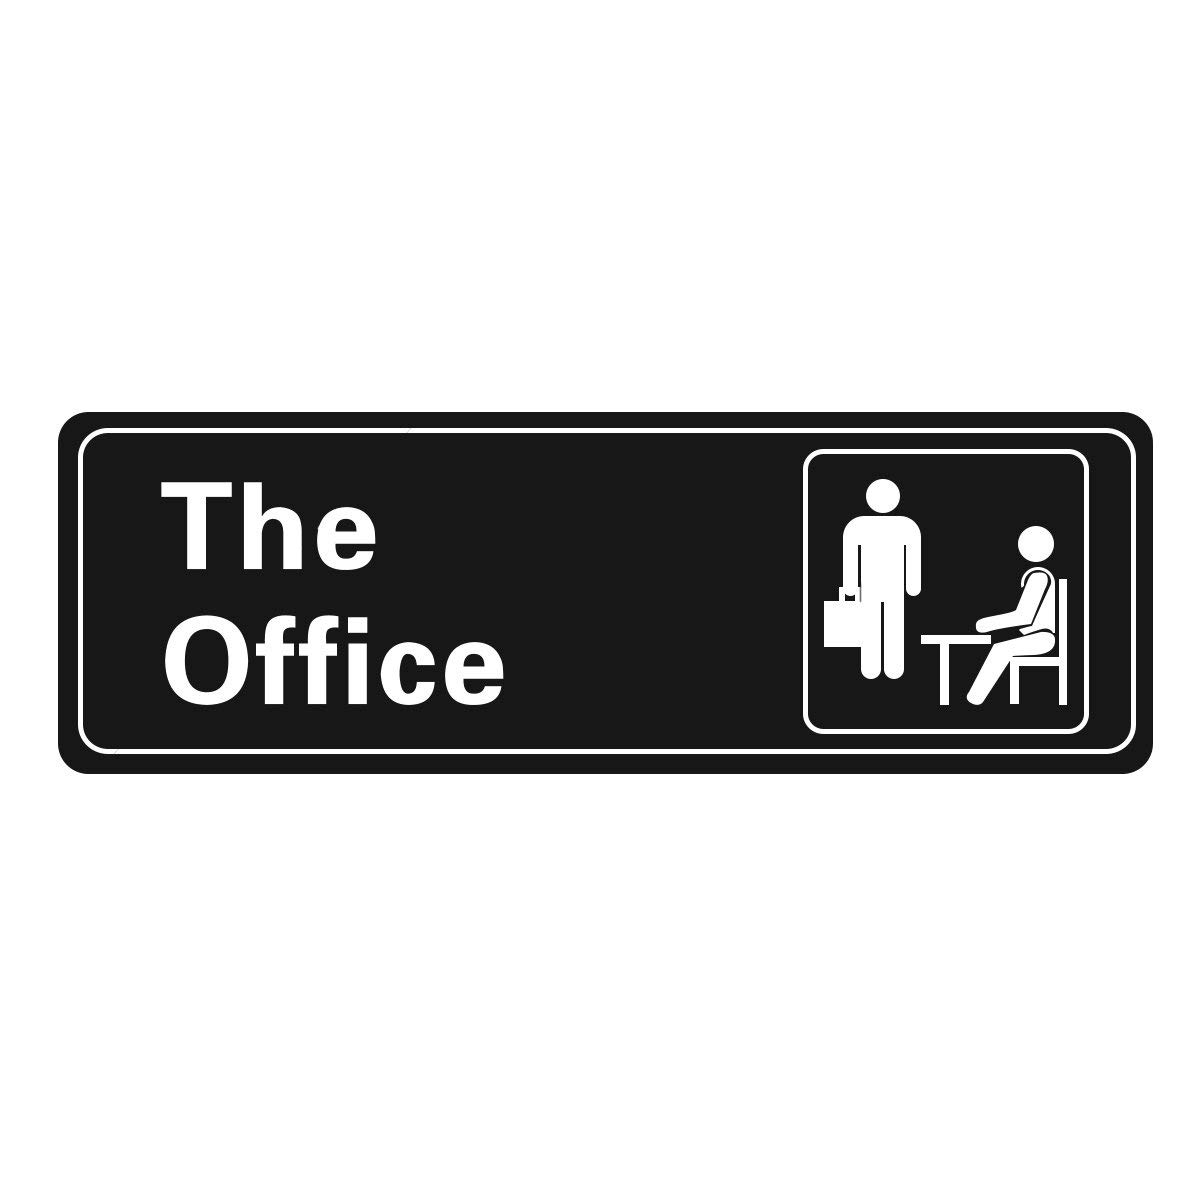 The Office Self Adhesive Sign 9 X 3 Inch Black White 1 Sign Visual Impact For Door Or Wall Large Or Small Office By Veronica Amazon In Home Kitchen The puzzle was replaced by different sized squares with the colors remaining unchanged. the office self adhesive sign 9 x 3